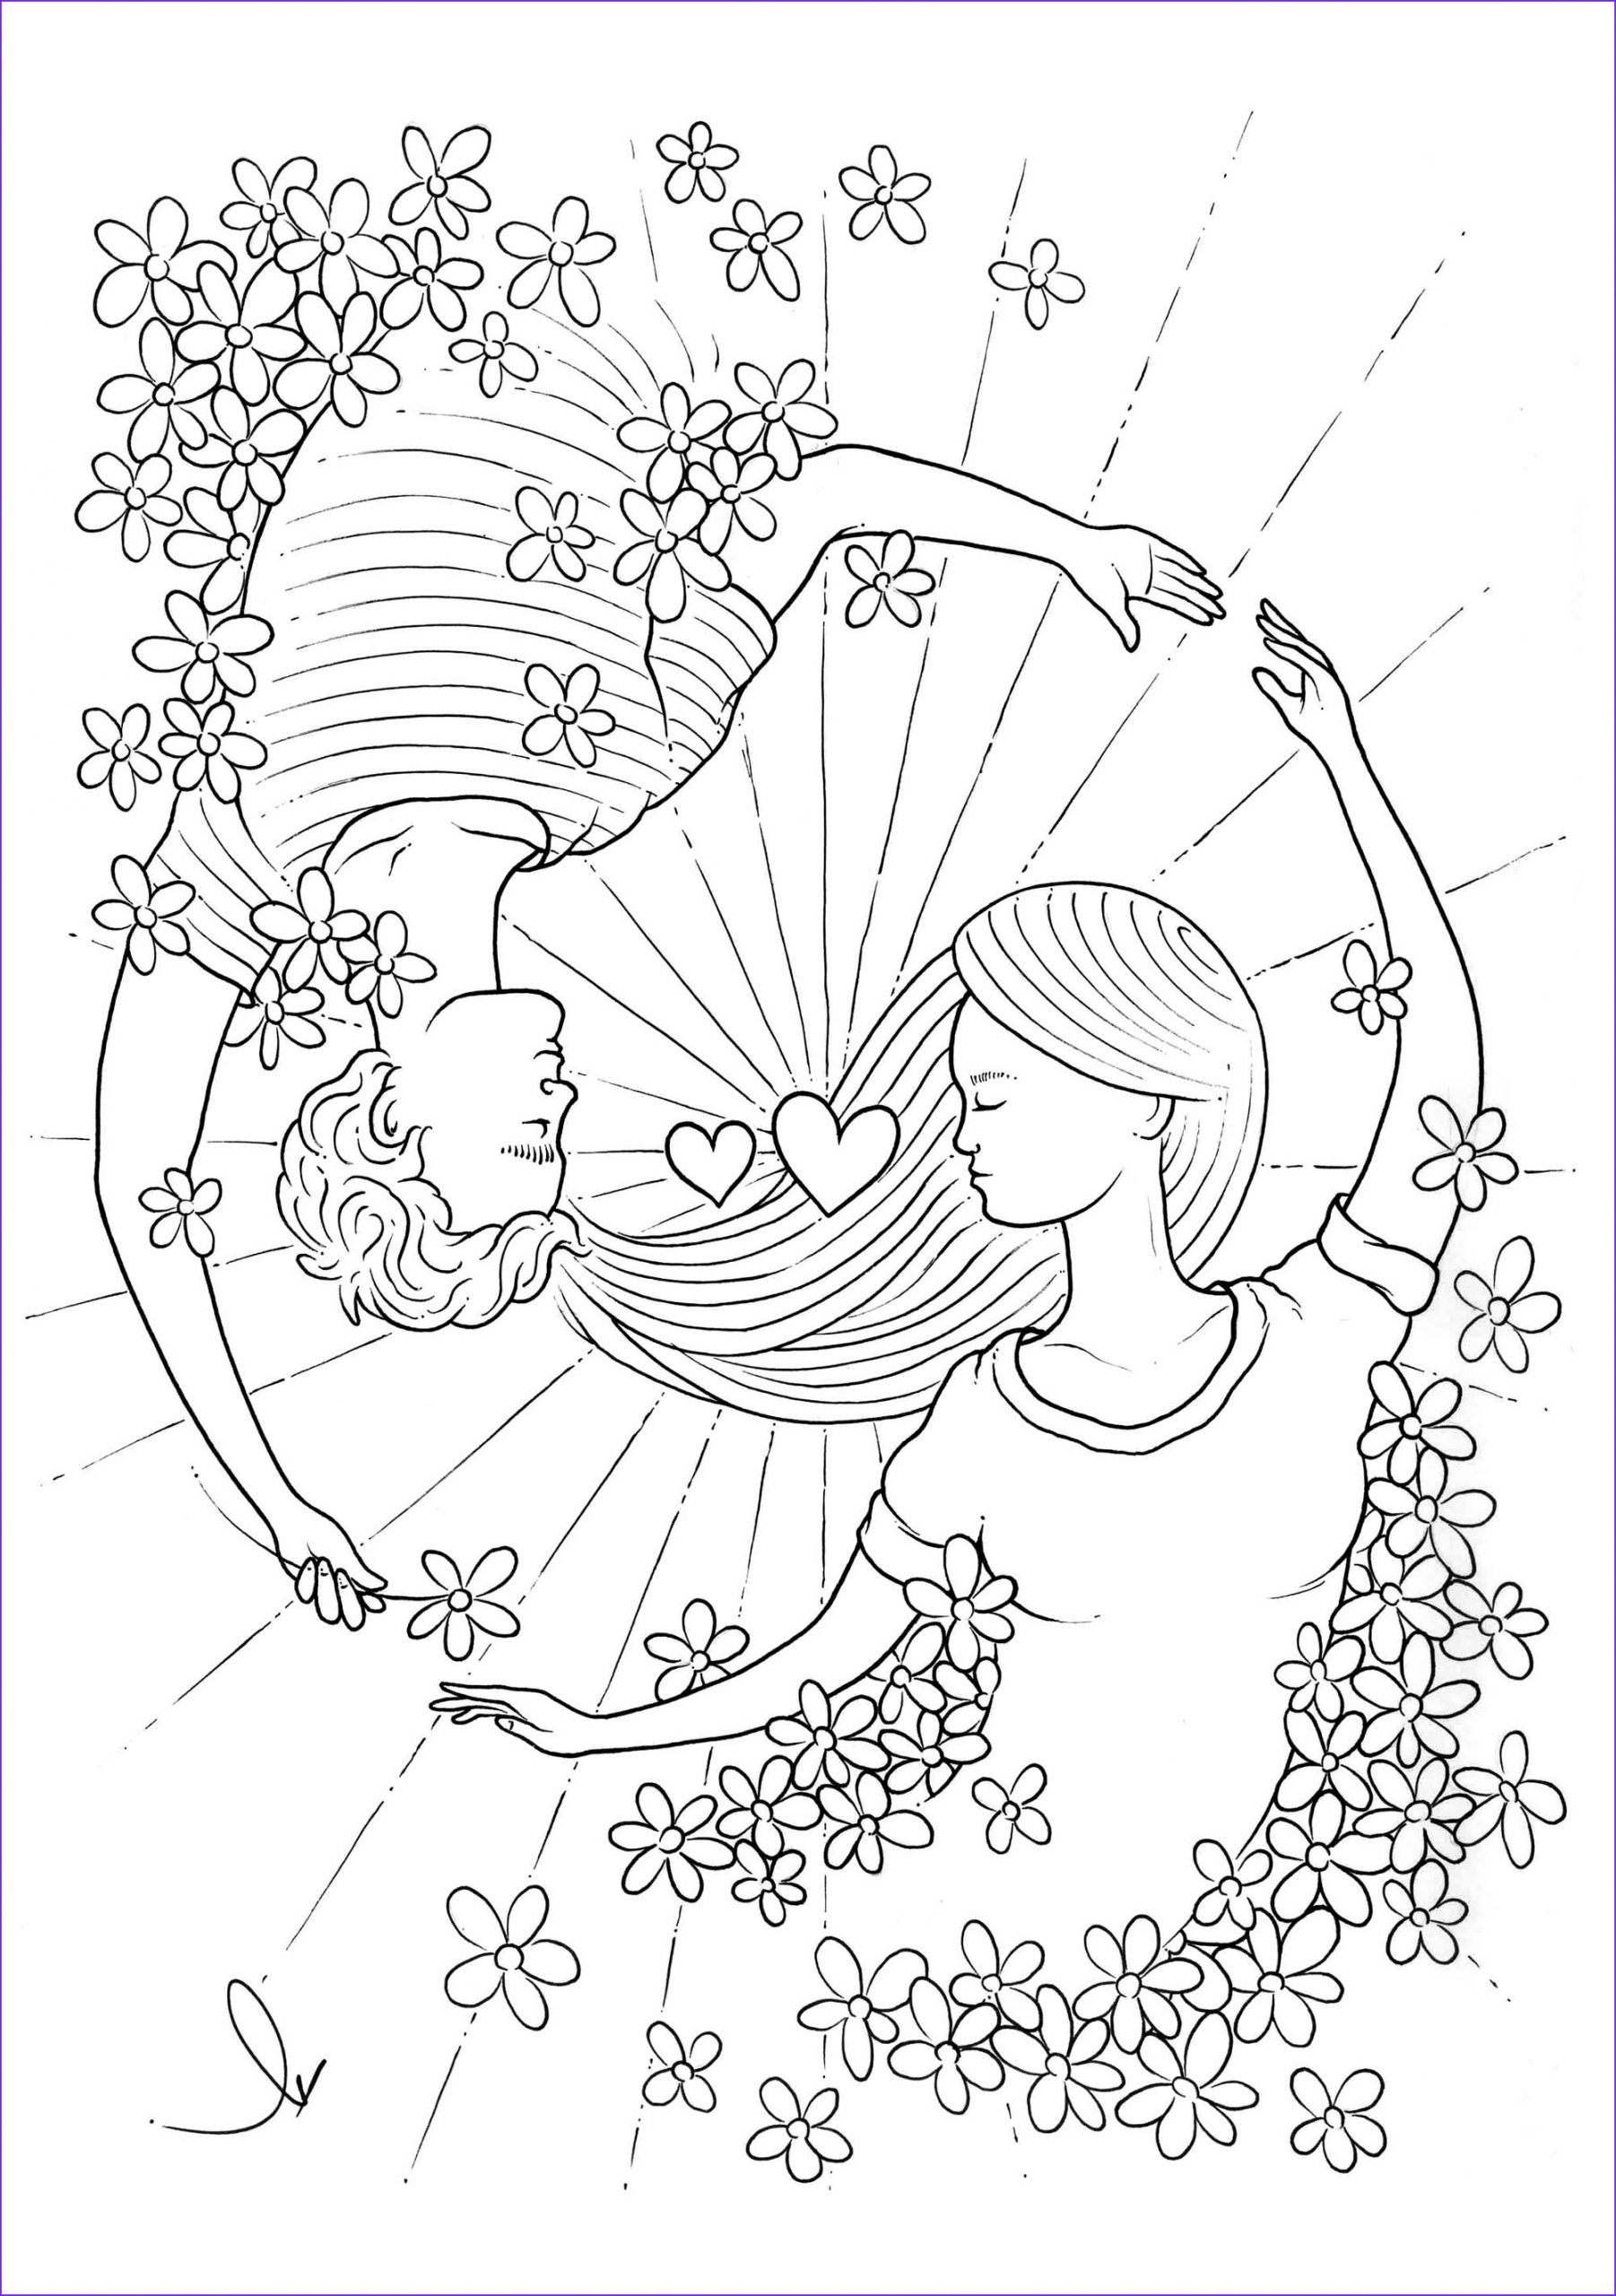 St Valentines Coloring Page Luxury Gallery Valentine S Day Konstantinos Valentine S Day Adult